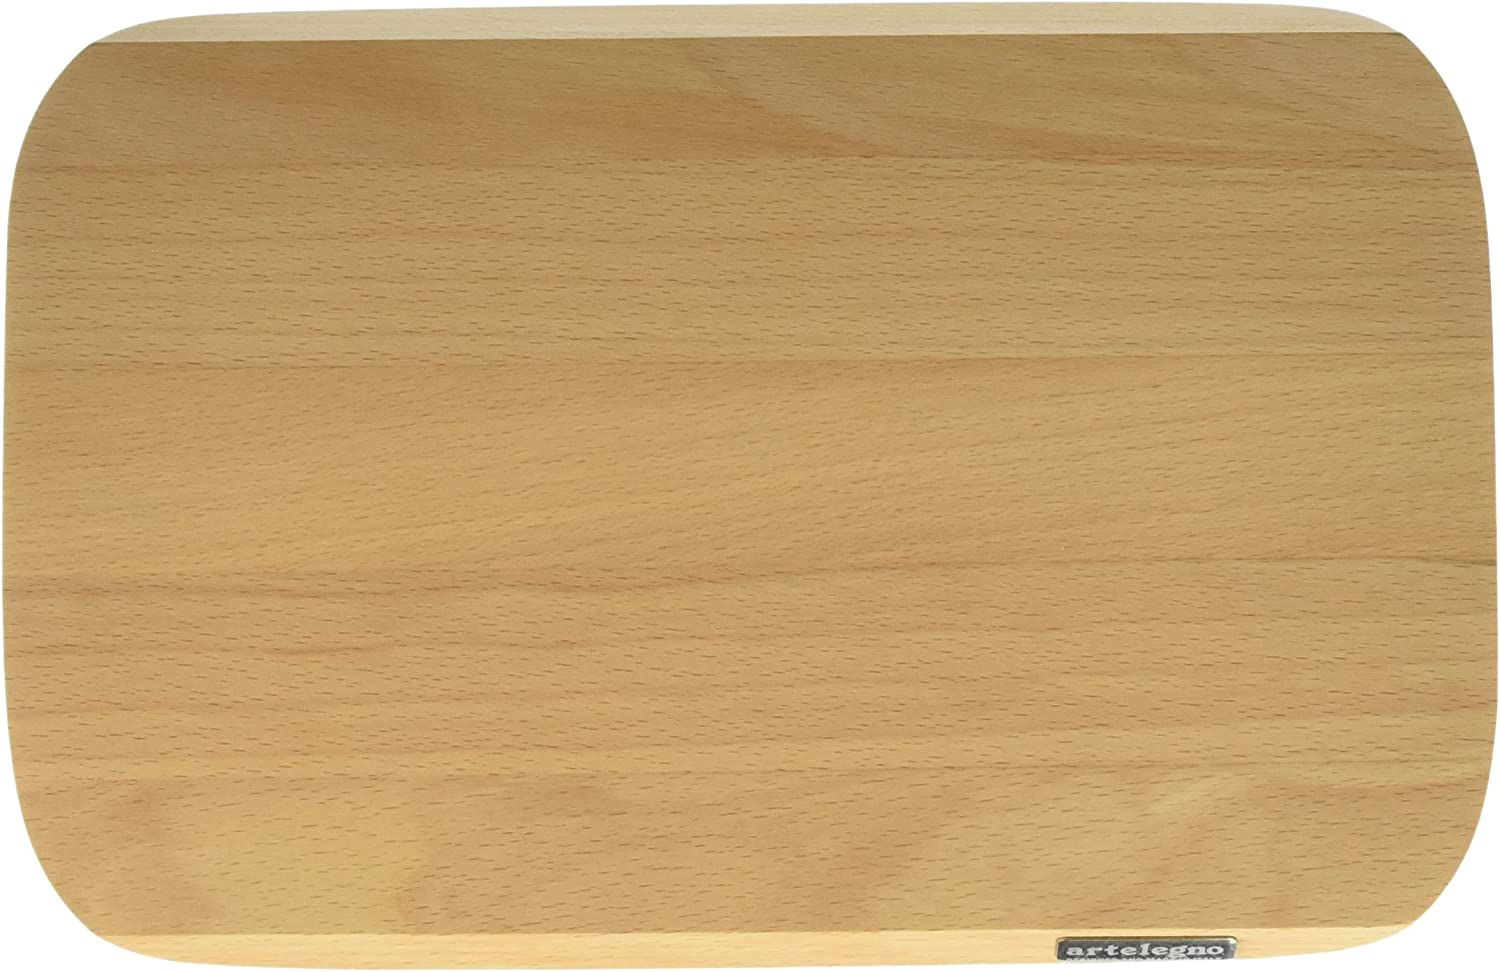 Ecofriendly Small Luxurious Italian Siena Collection by Master Craftsmen Natural Finish Artelegno Solid Beech Wood Cutting Board